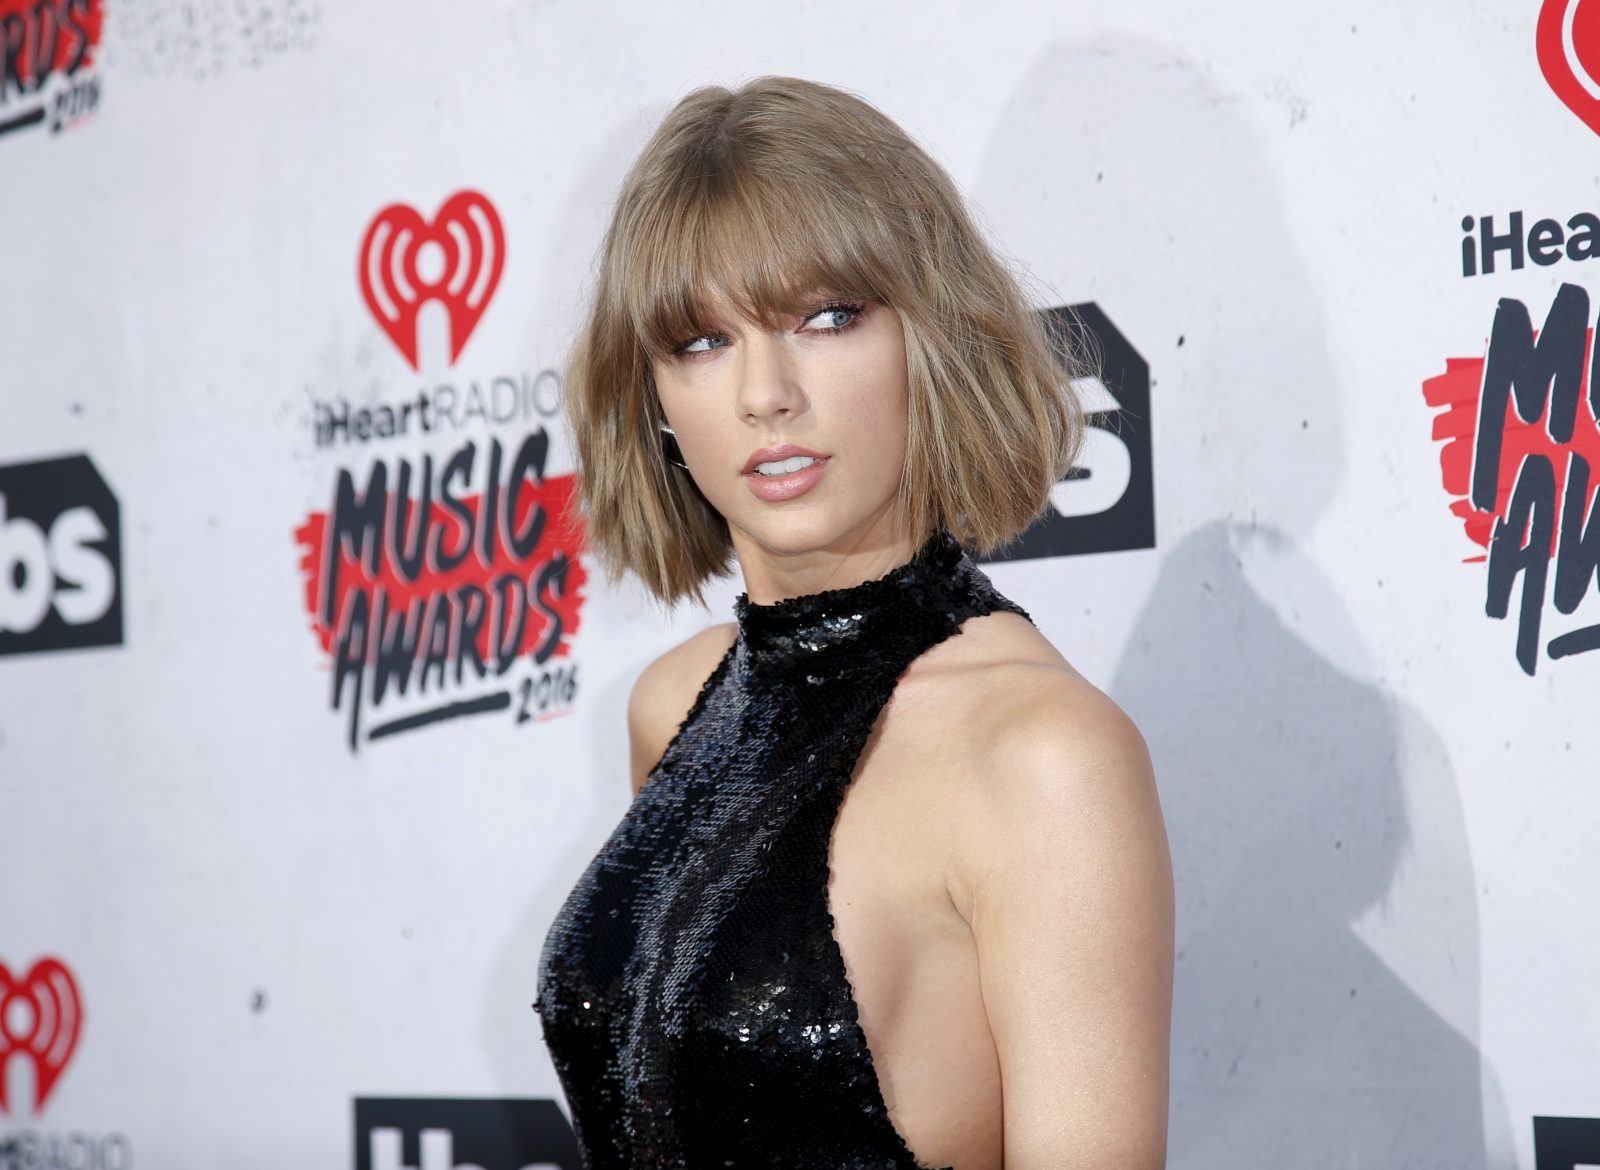 Taylor Swift Leaked Video Kim Kardashian And Calvin Harris Drama Will Only Boost Career